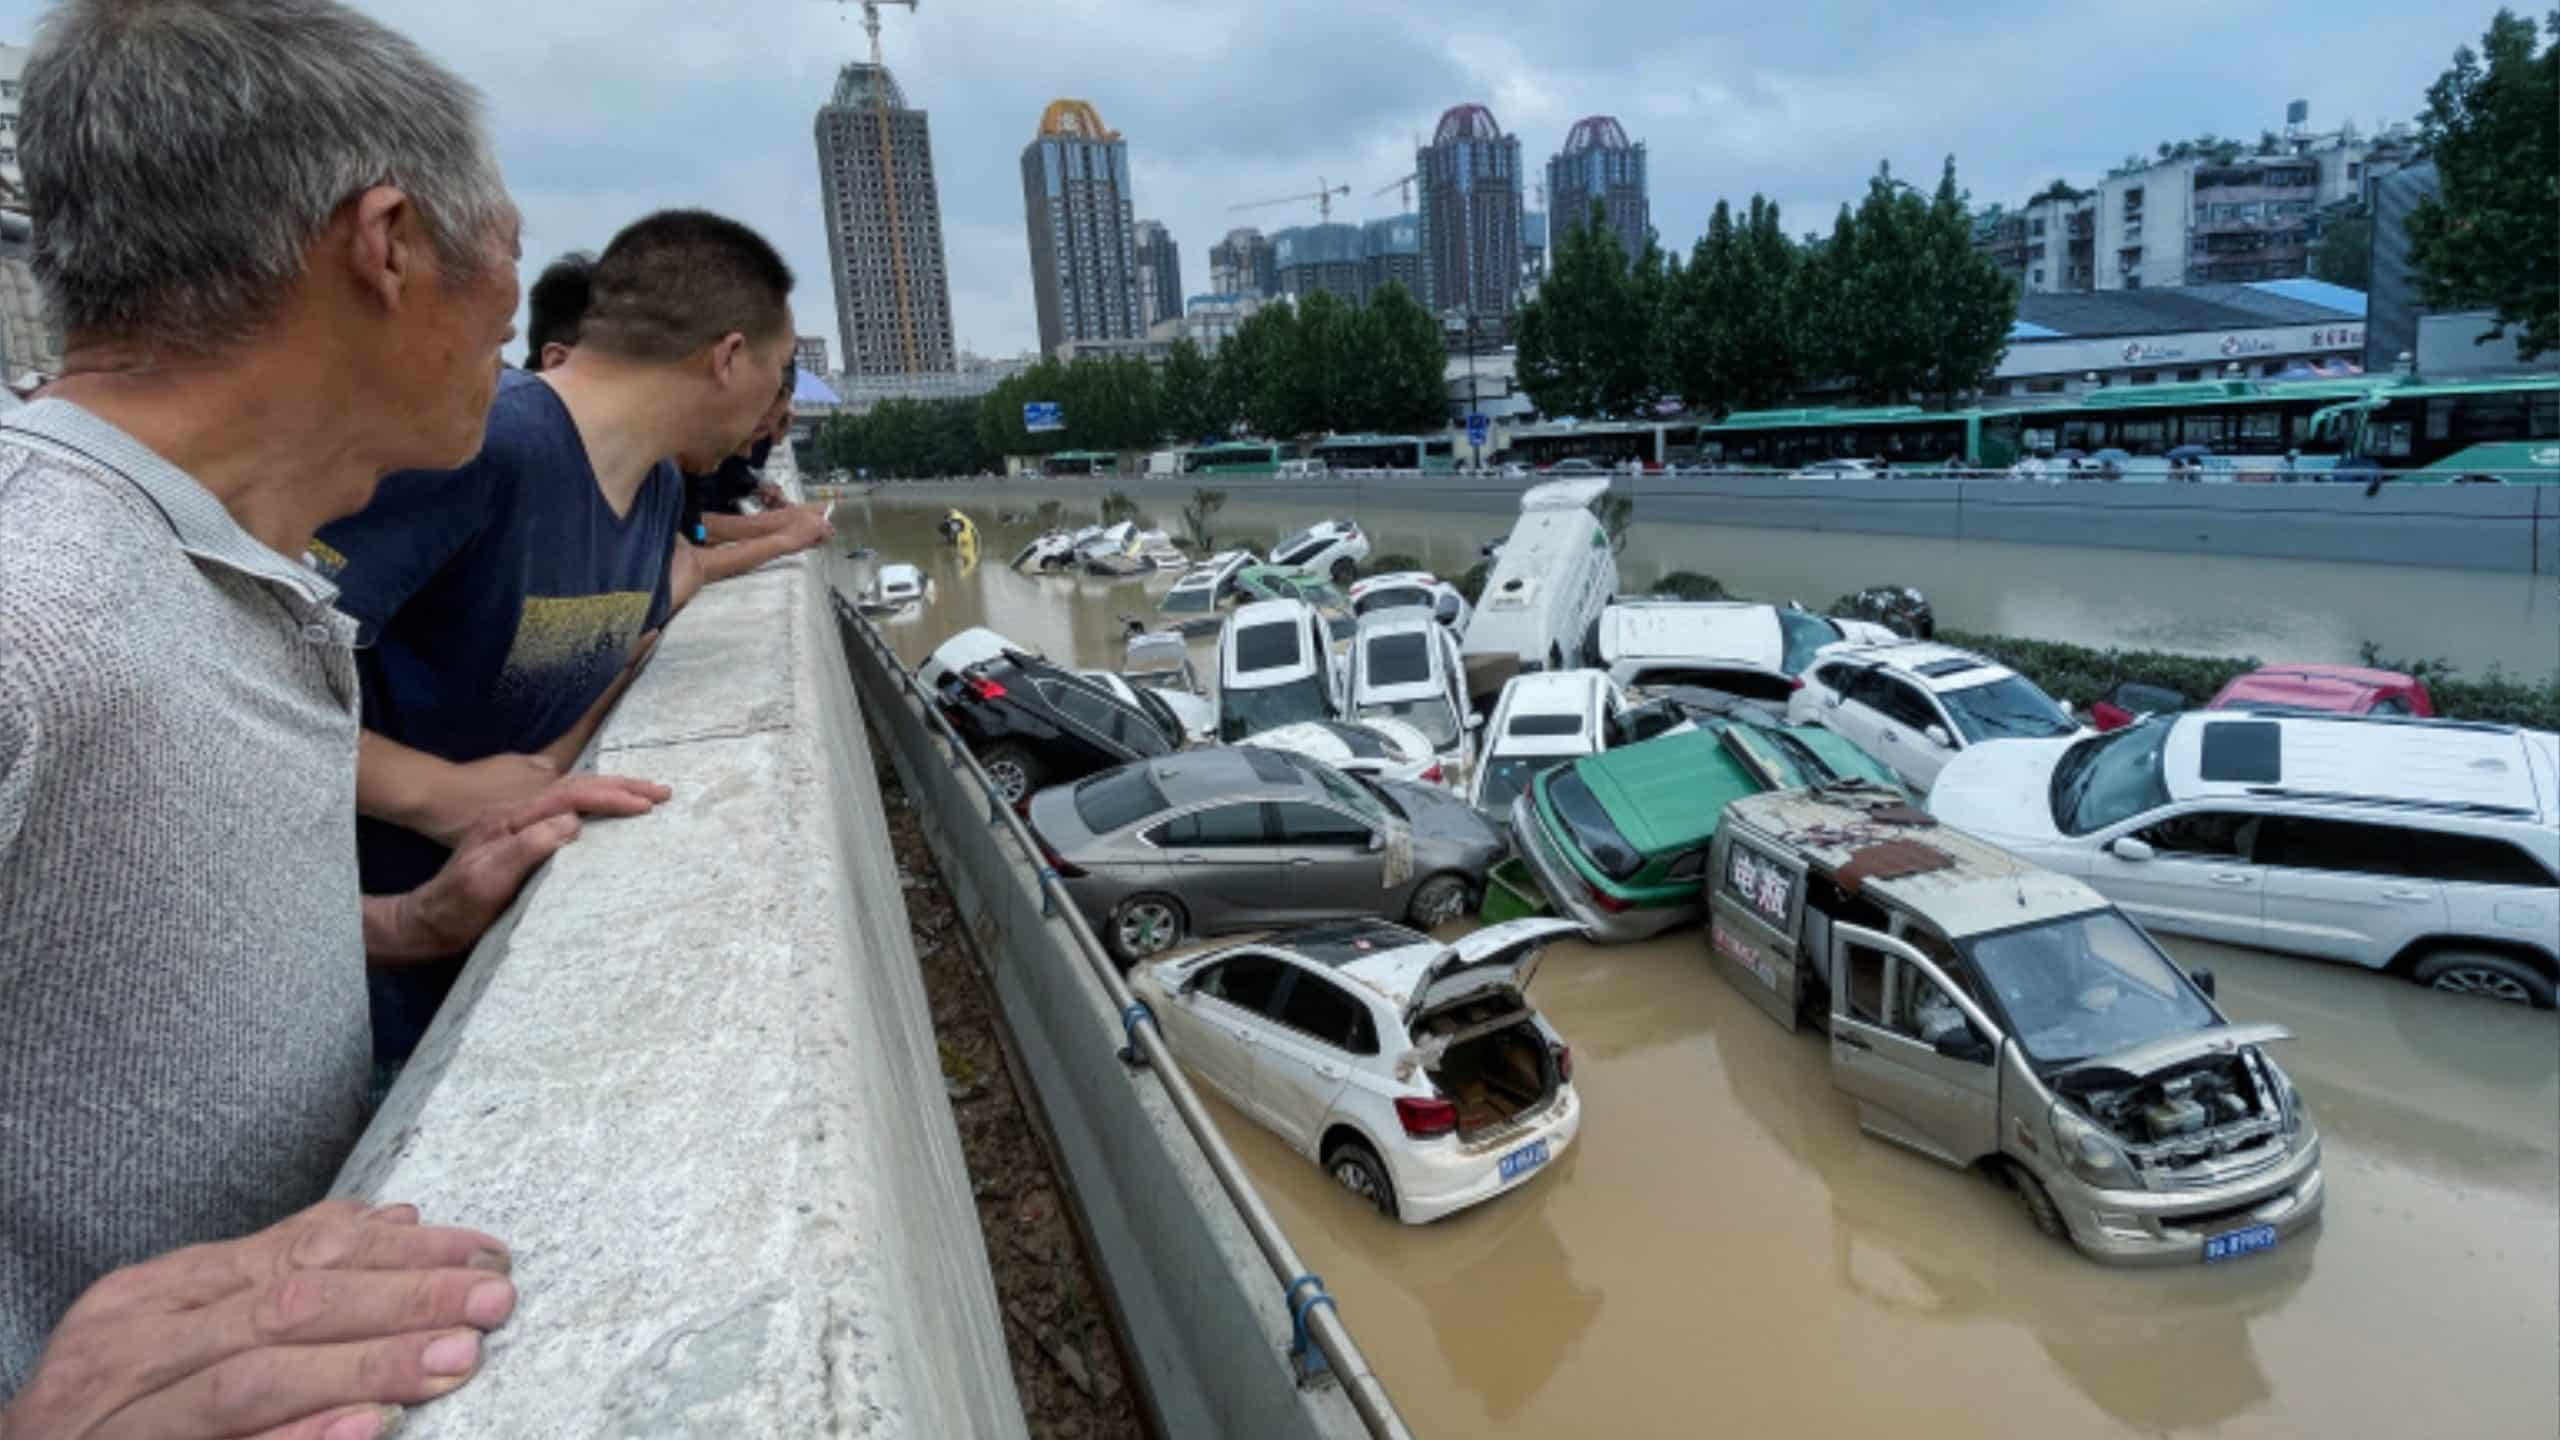 As Deadly Flood Ravages Chinese City, Beijing's Censors Go Into Overdrive Suppressing 'Negative Energy' Content 1